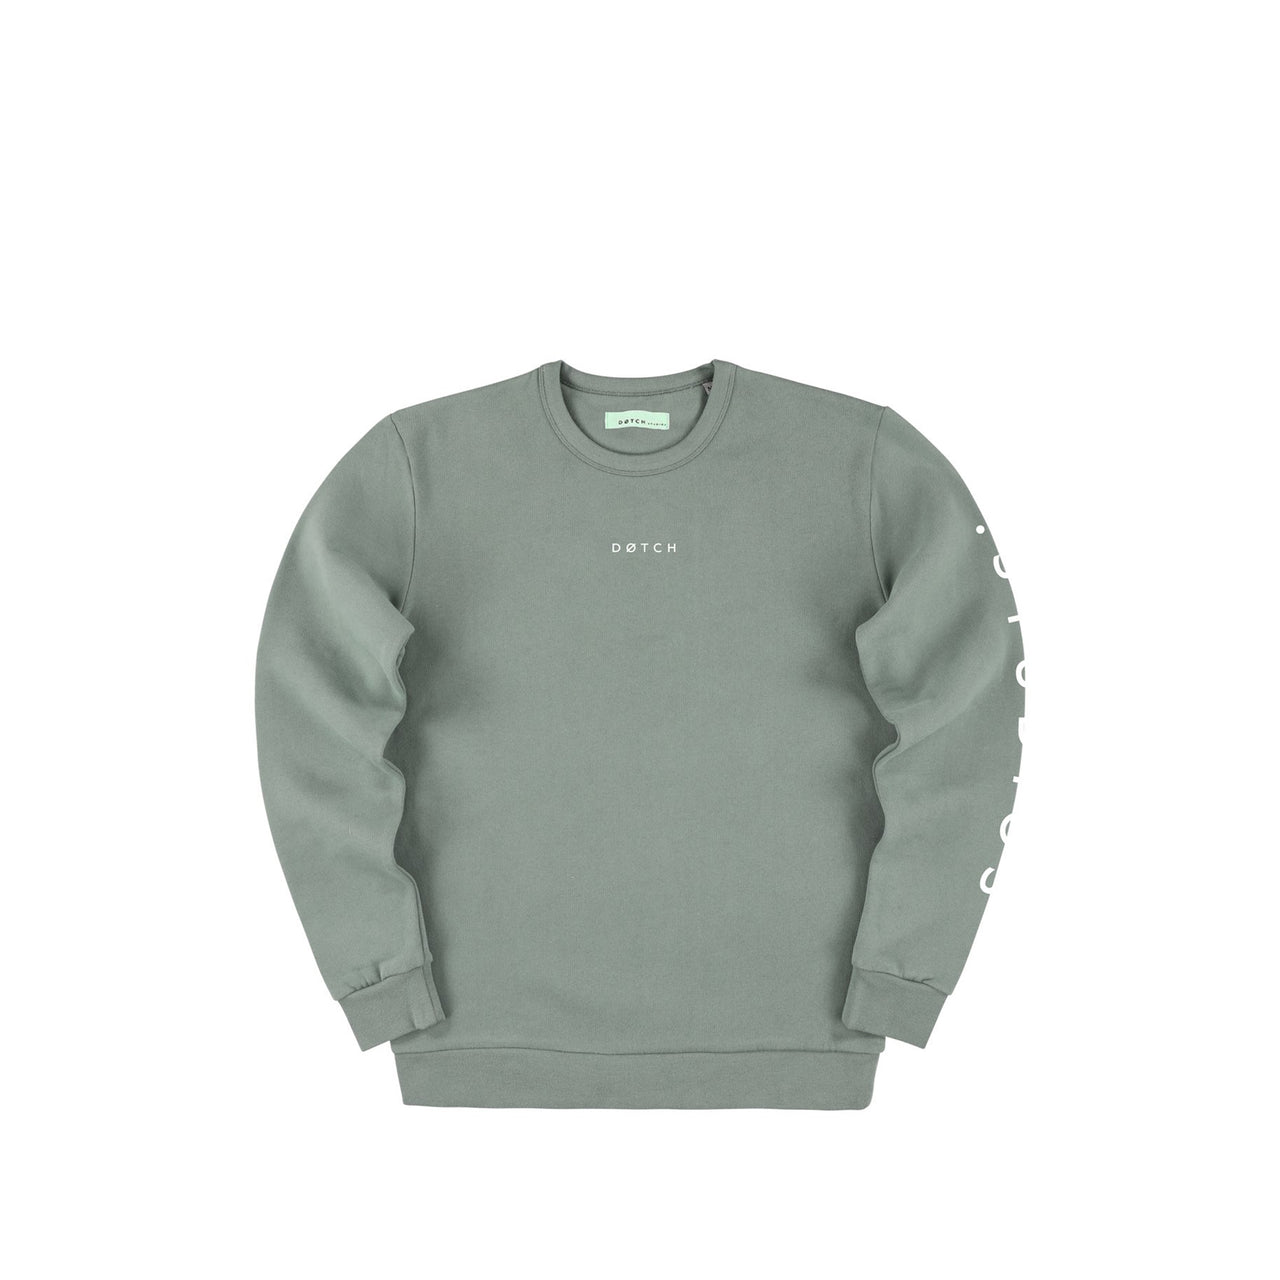 .Studio Sweater - Sage & White